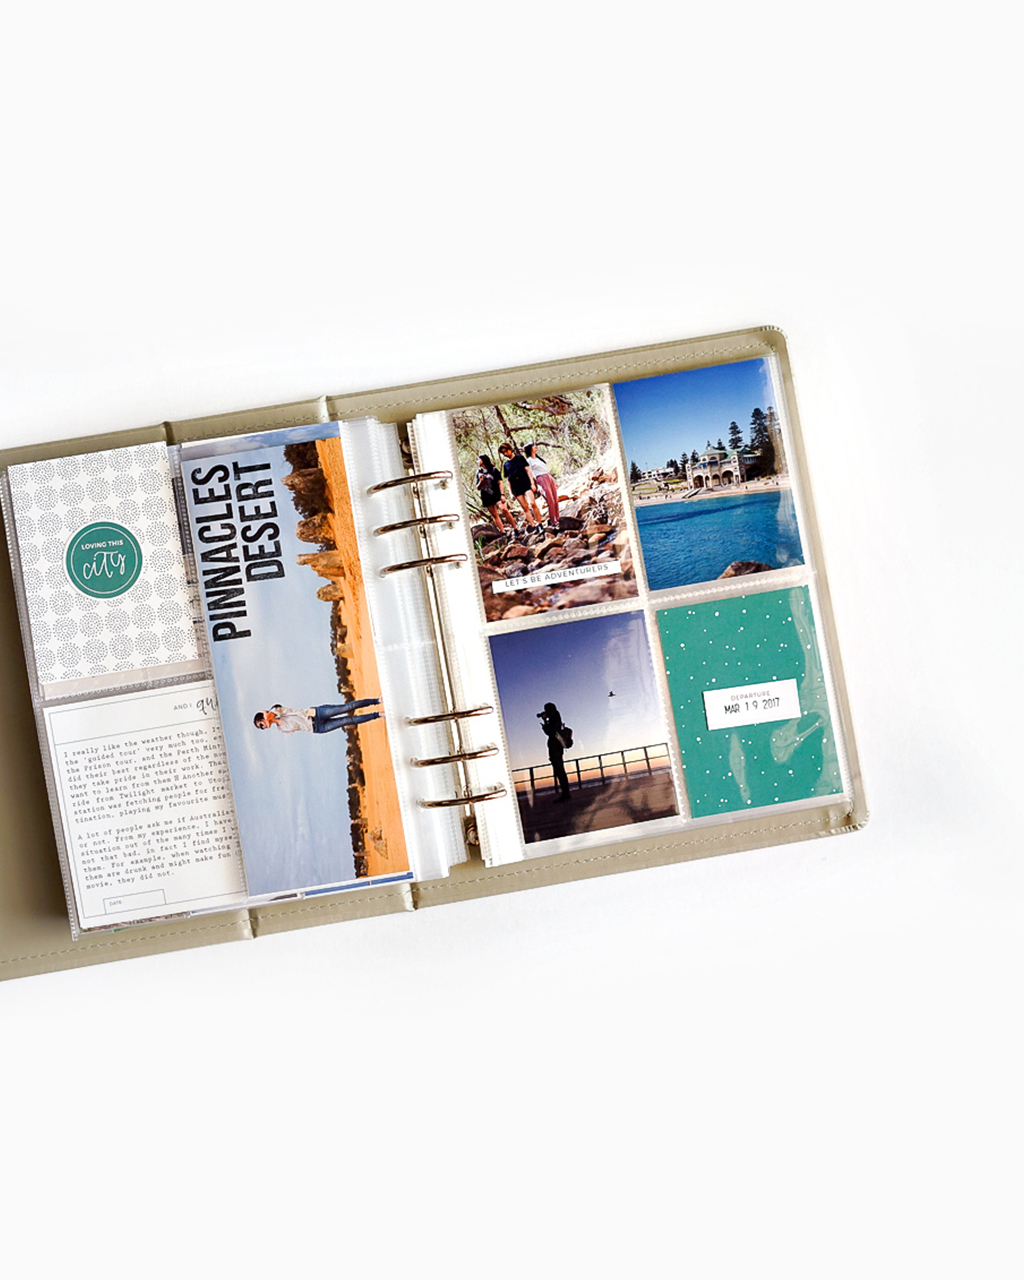 Scrapbook a long vacation in project life album in 4 steps